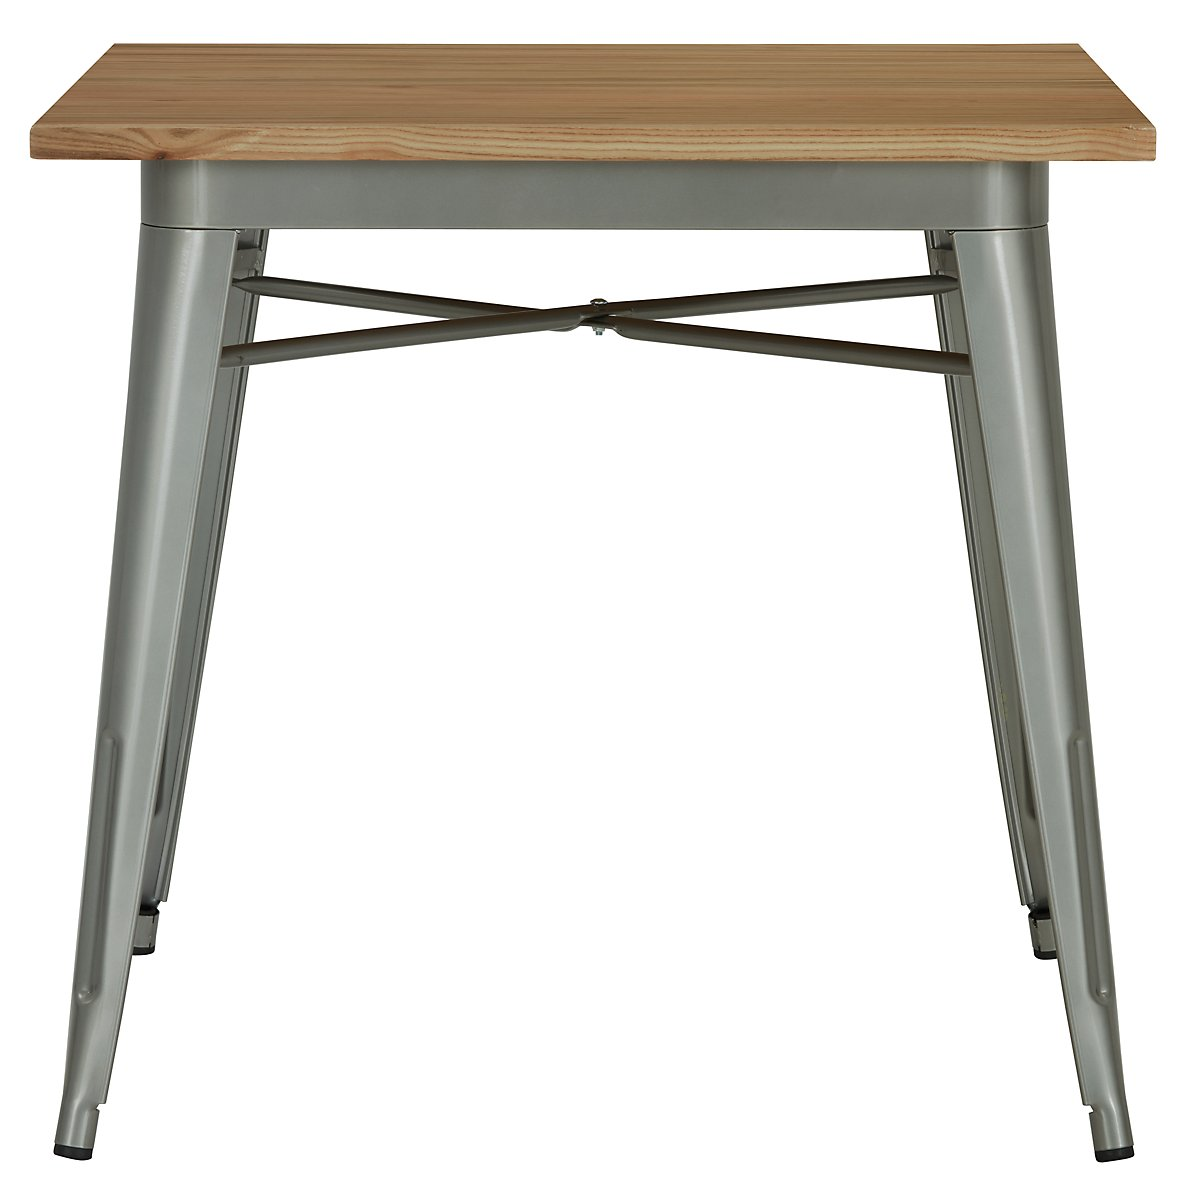 Huntley Light Tone Square Table